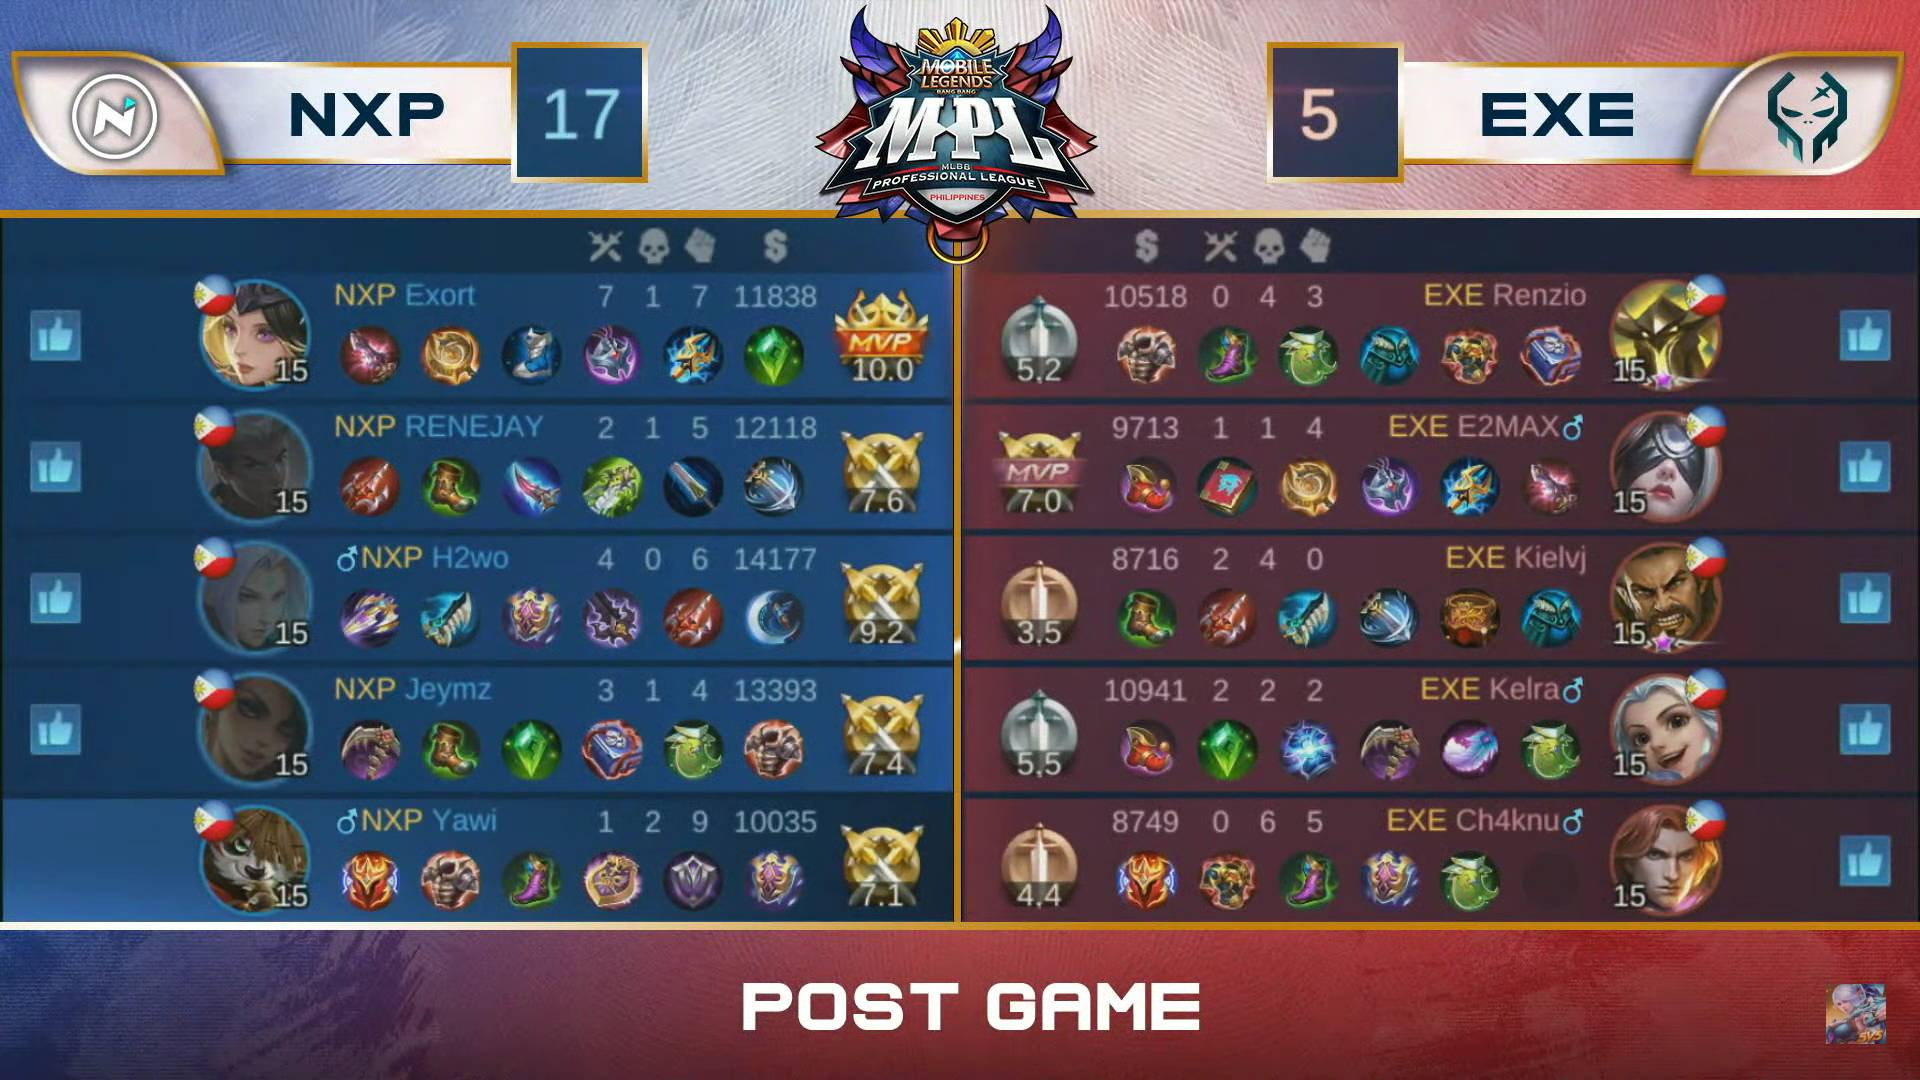 MPL-PH-Season-7-Nexplay-def-Execration-Game-3 Yawi's Akai plays big as Nexplay deals Execration fifth straight loss in MPL PH ESports Mobile Legends MPL-PH News  - philippine sports news